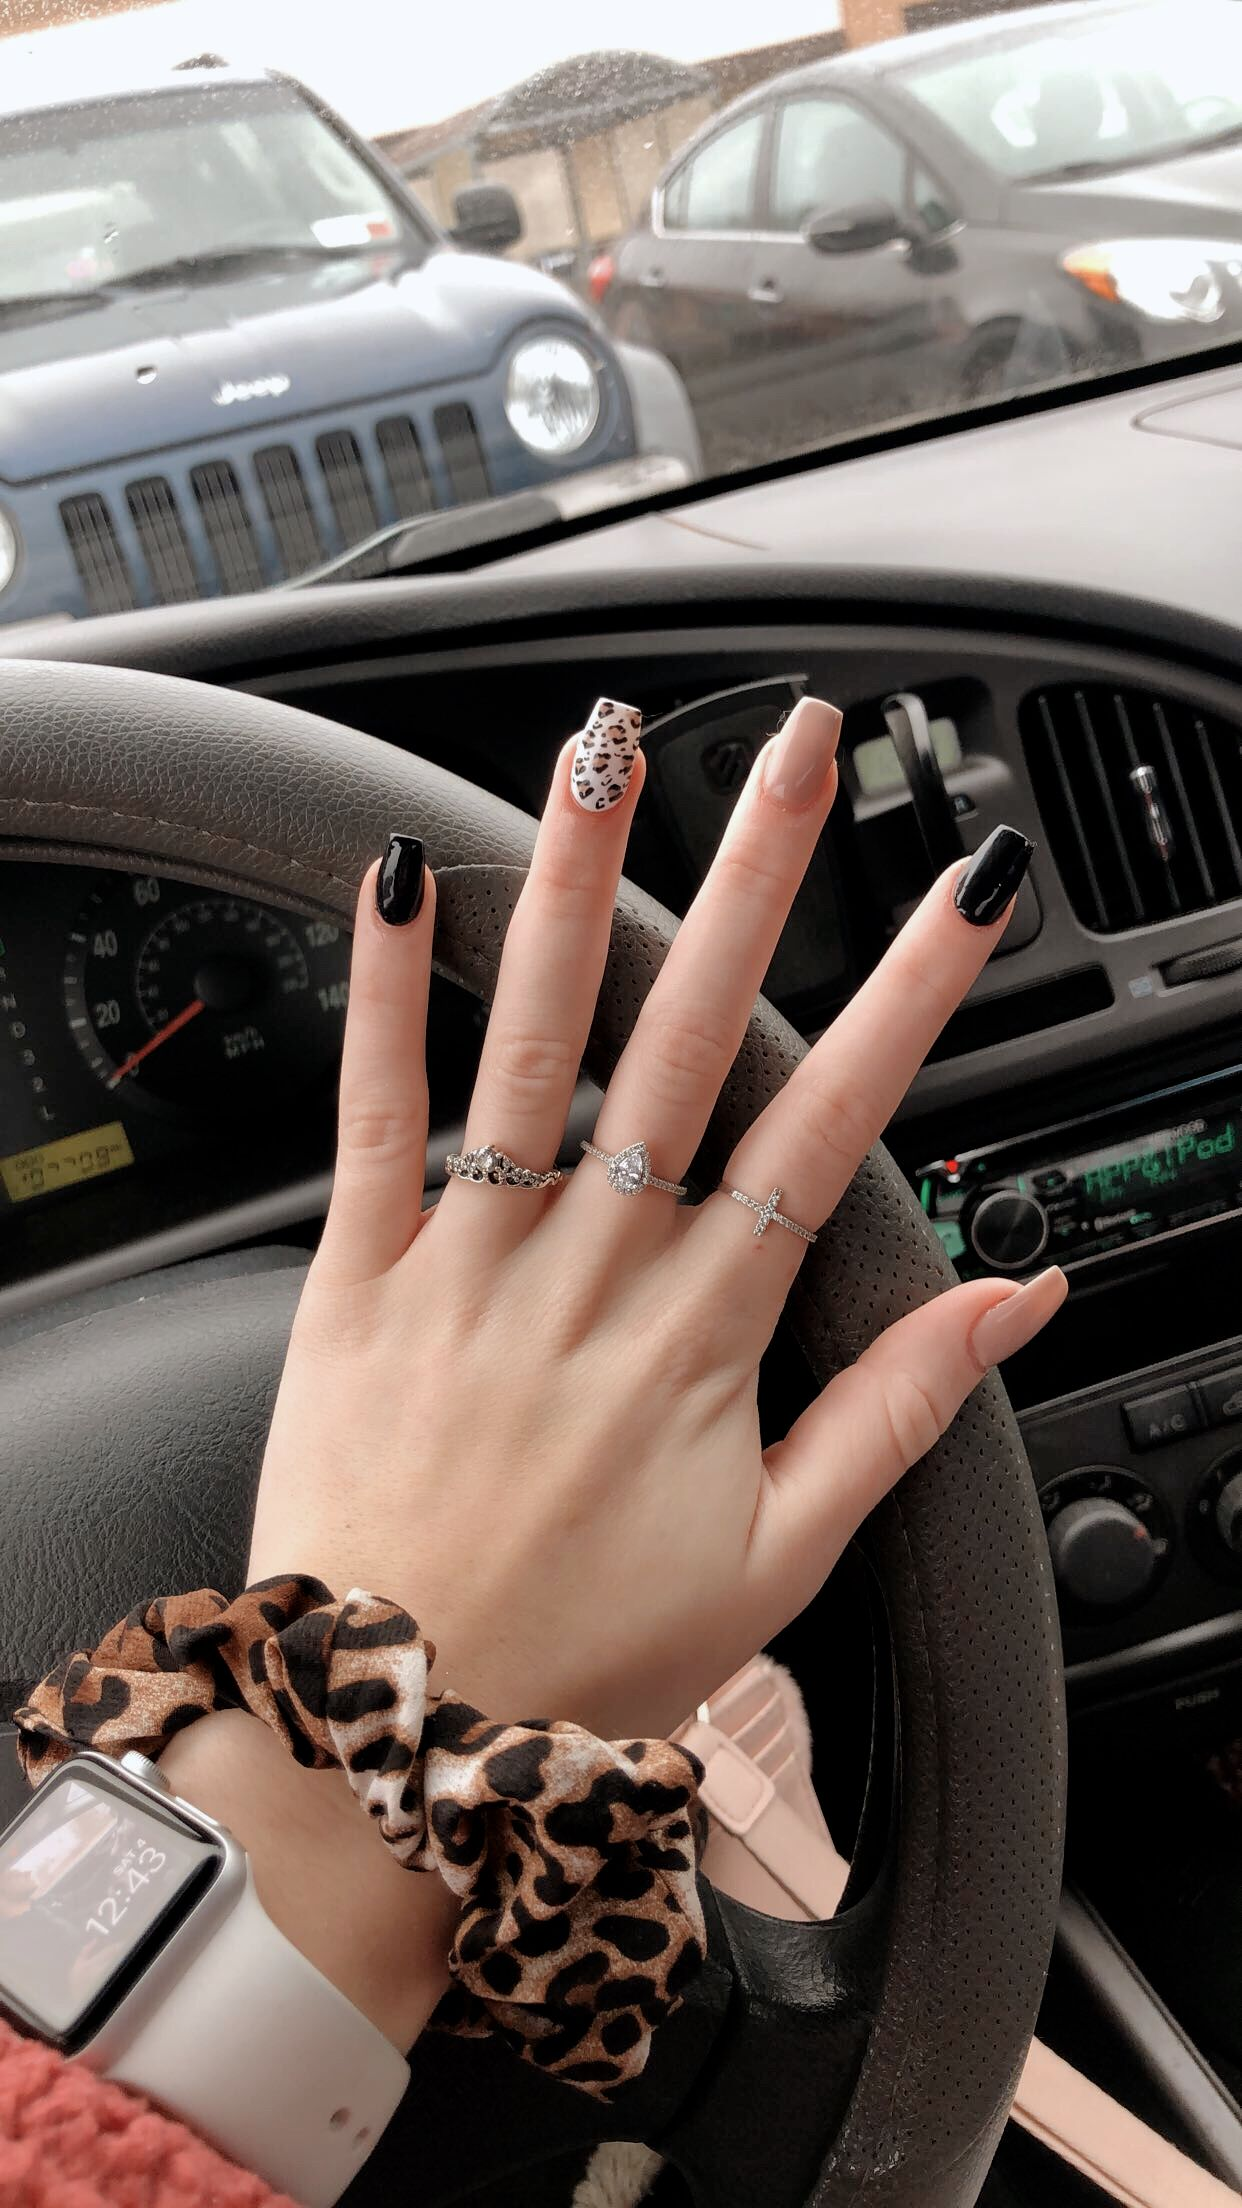 20 Great Ideas How To Make Acrylic Nails By Yourself 1 In 2020 Cheetah Print Nails Pink Nails Best Acrylic Nails